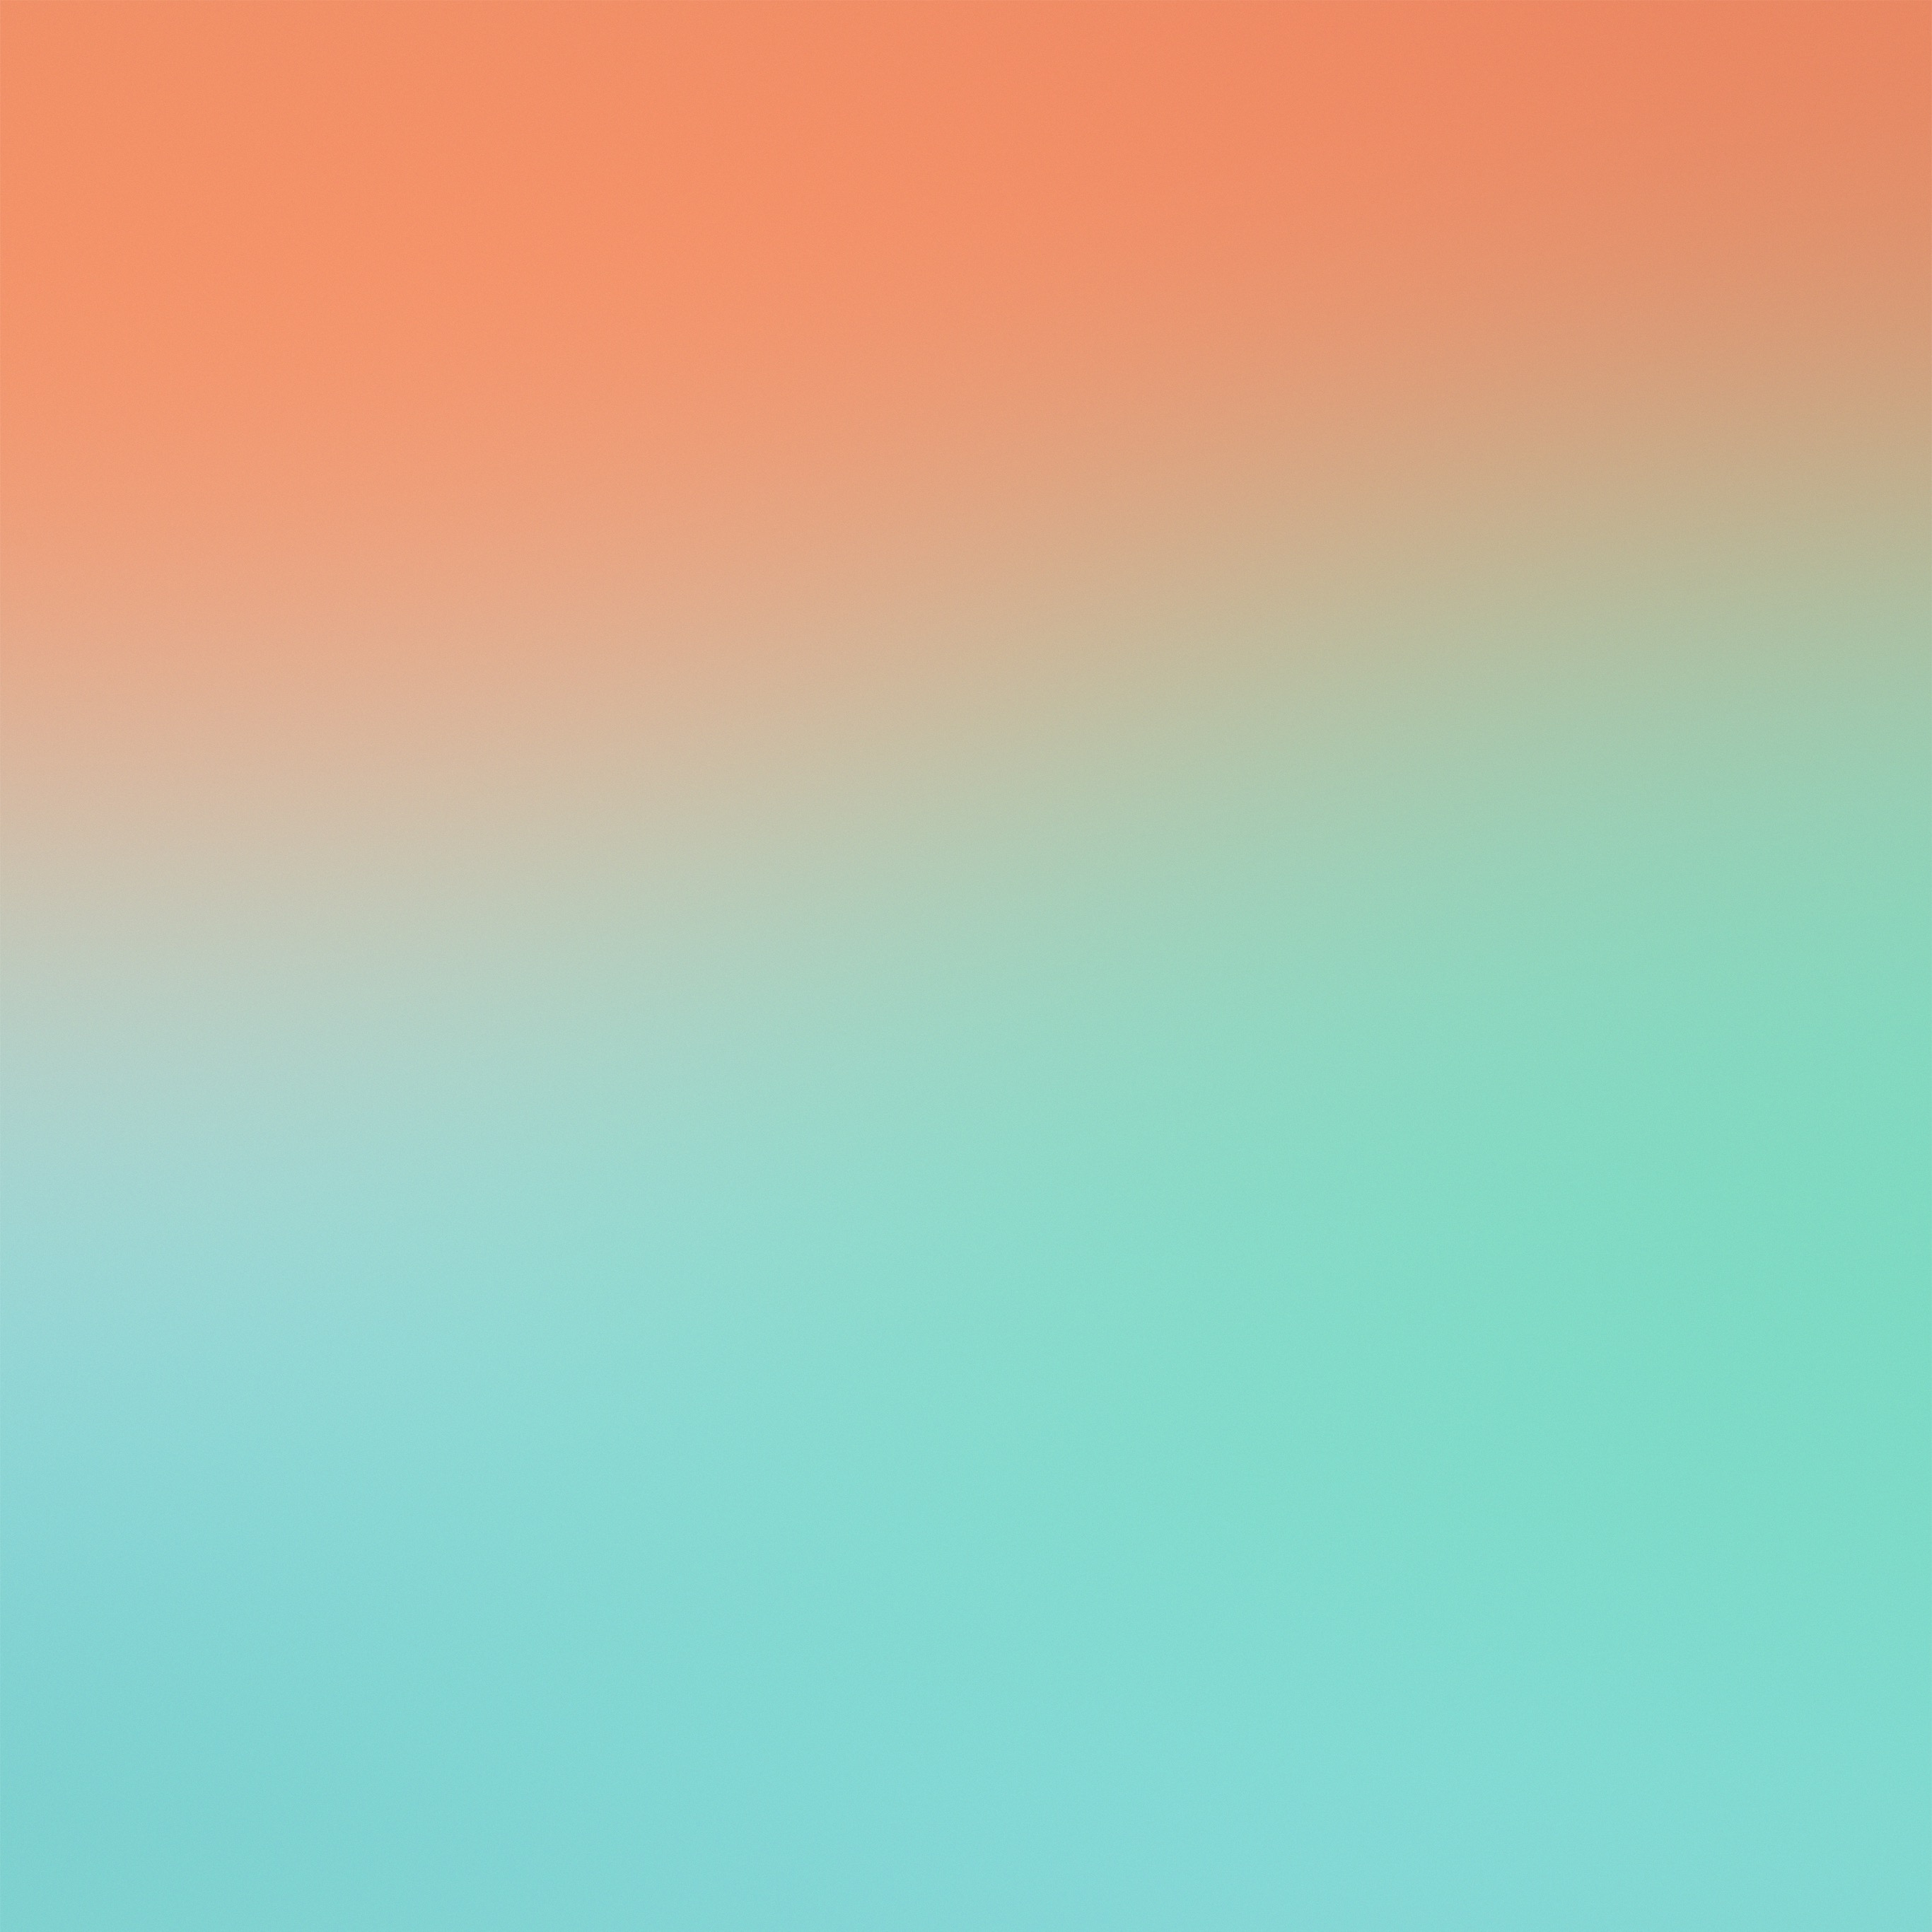 Pastel Wallpapers For Iphone And Ipad